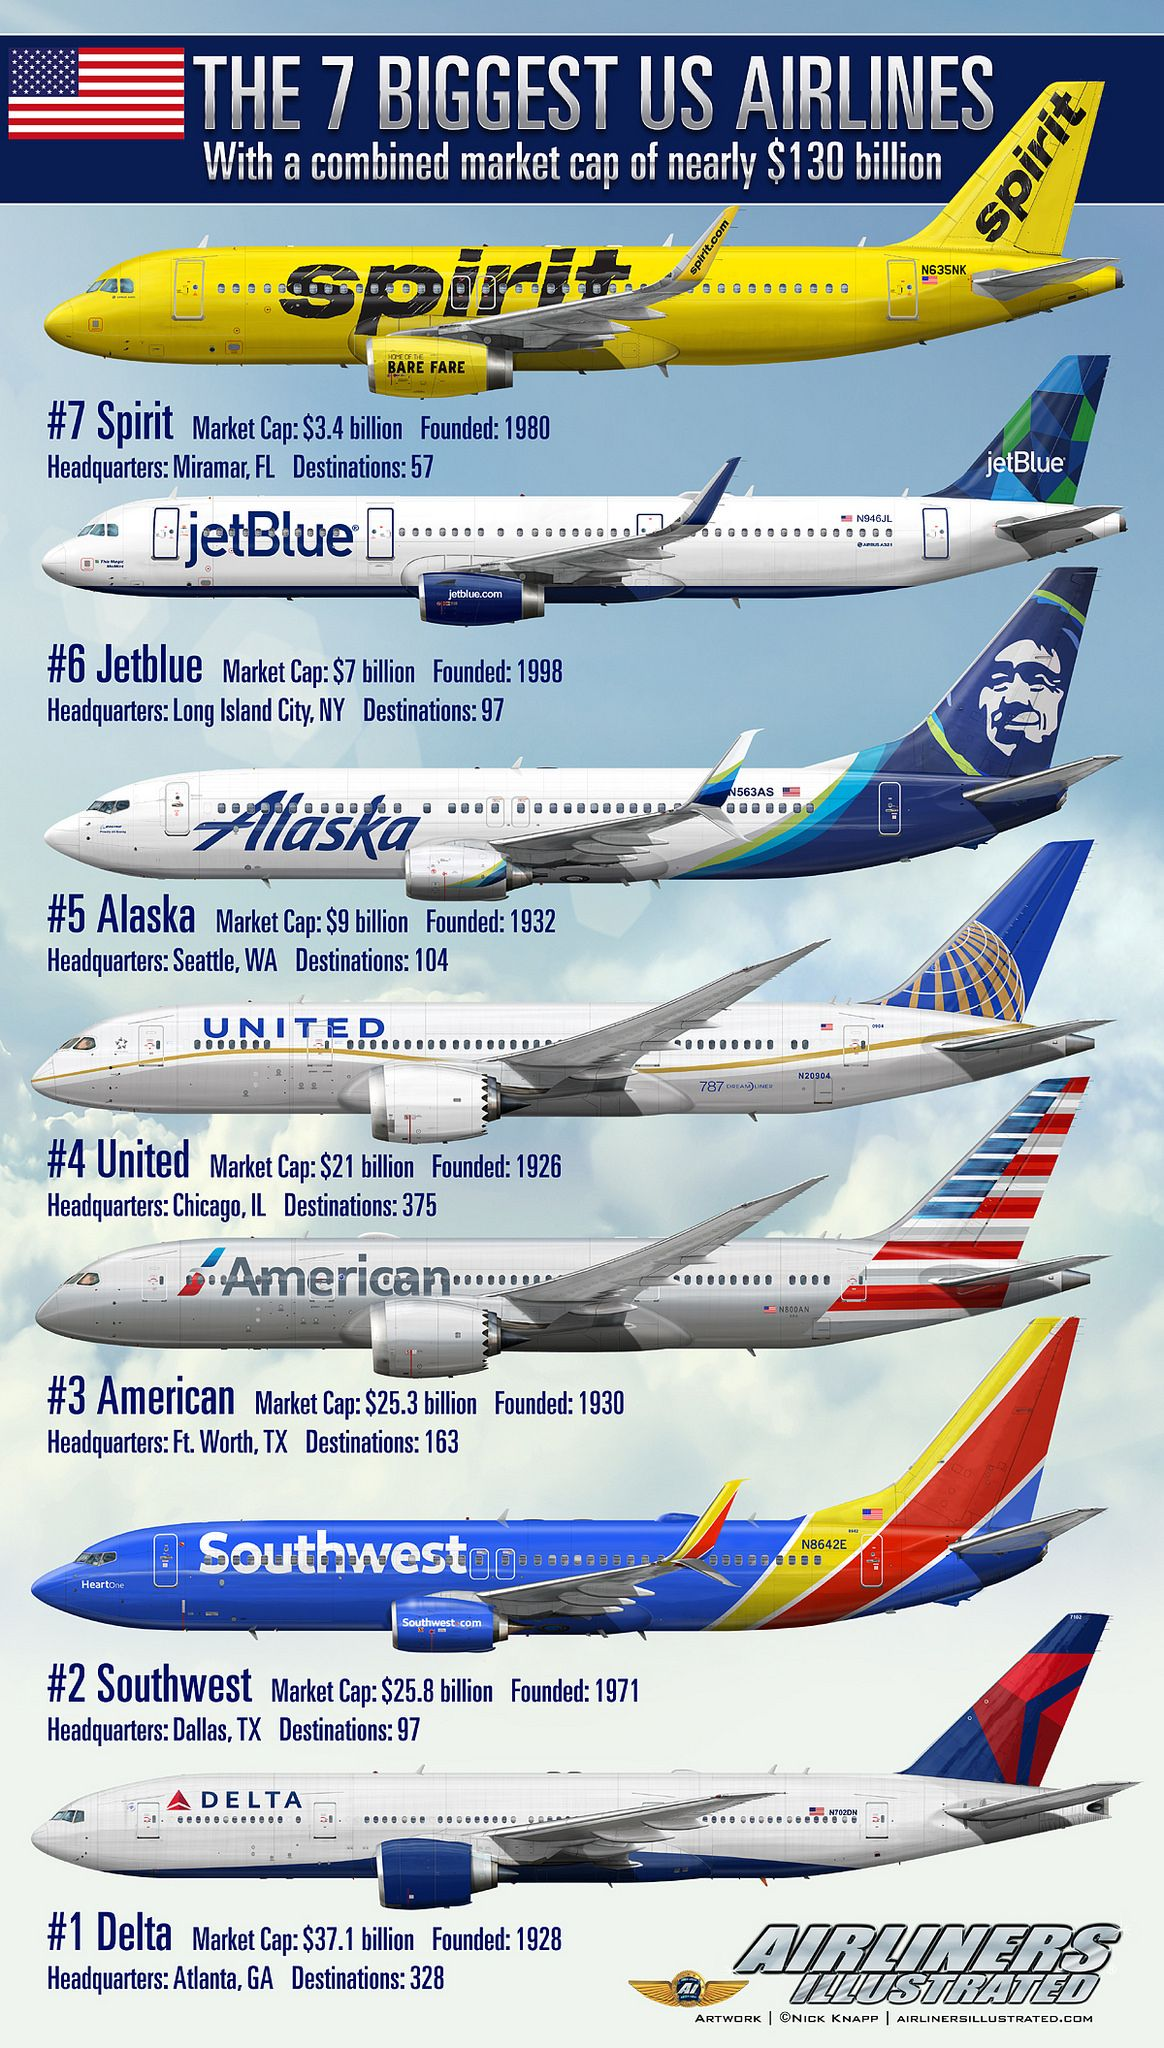 The 7 biggest US airlines Airliner Profile Art Big